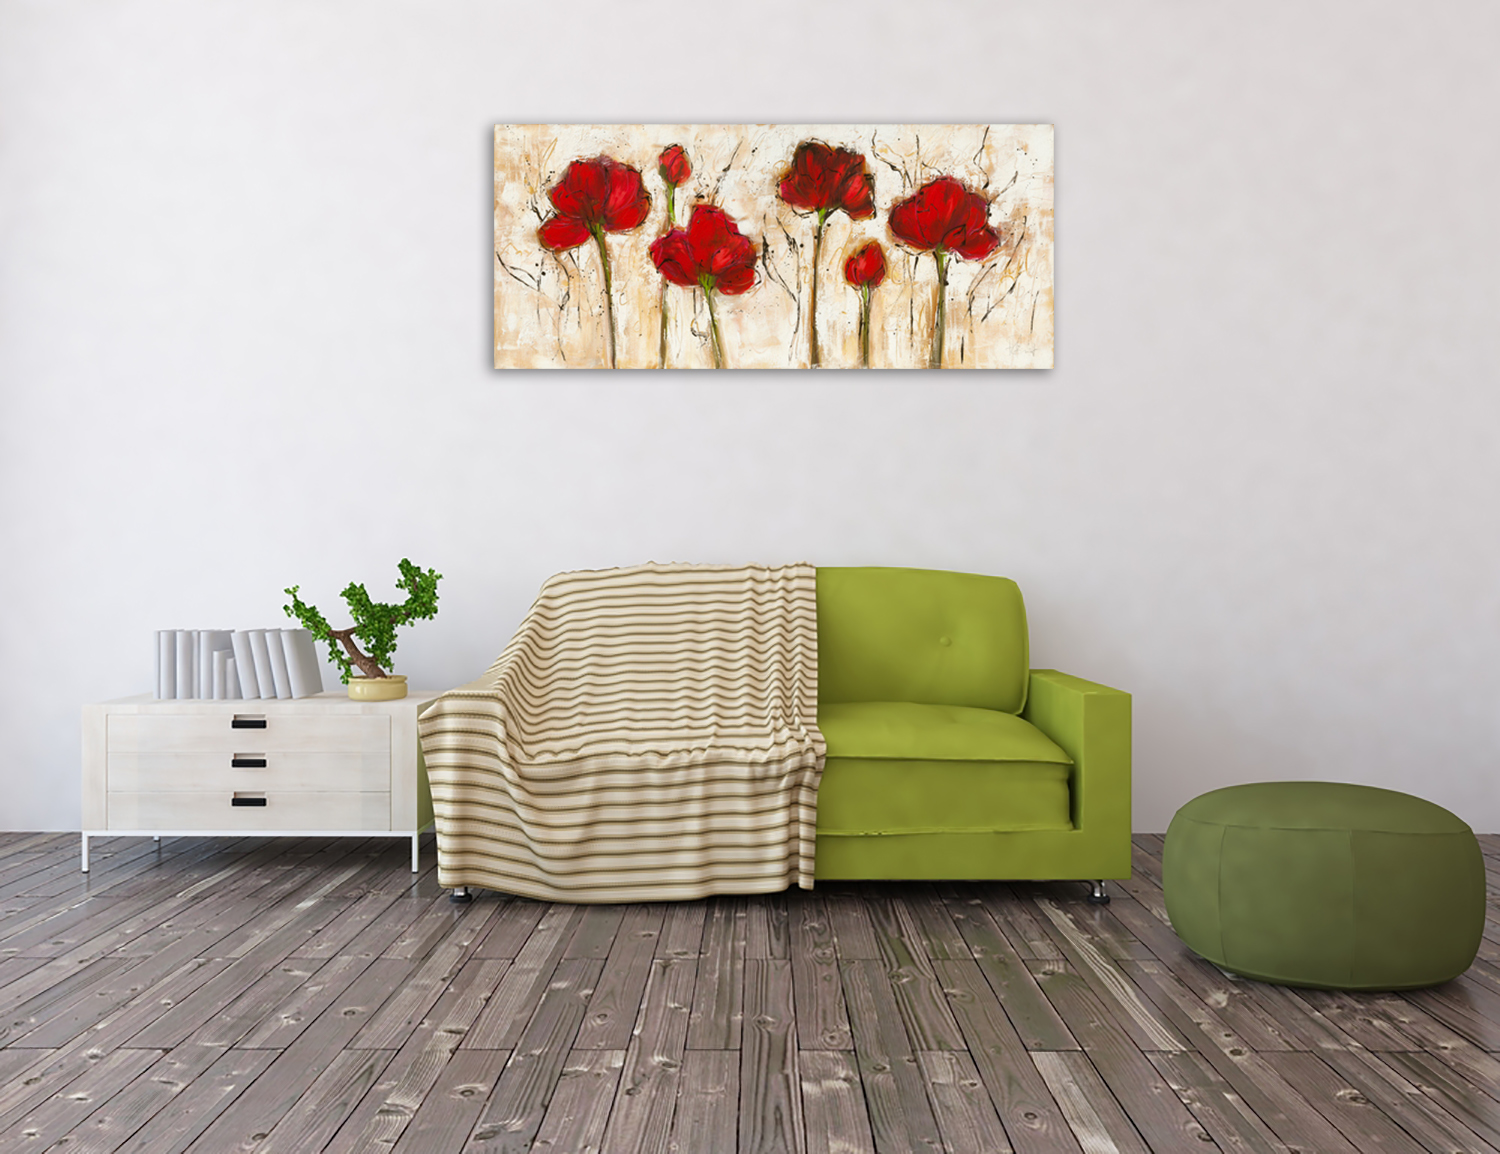 Floral Wall Art Print on Canvas